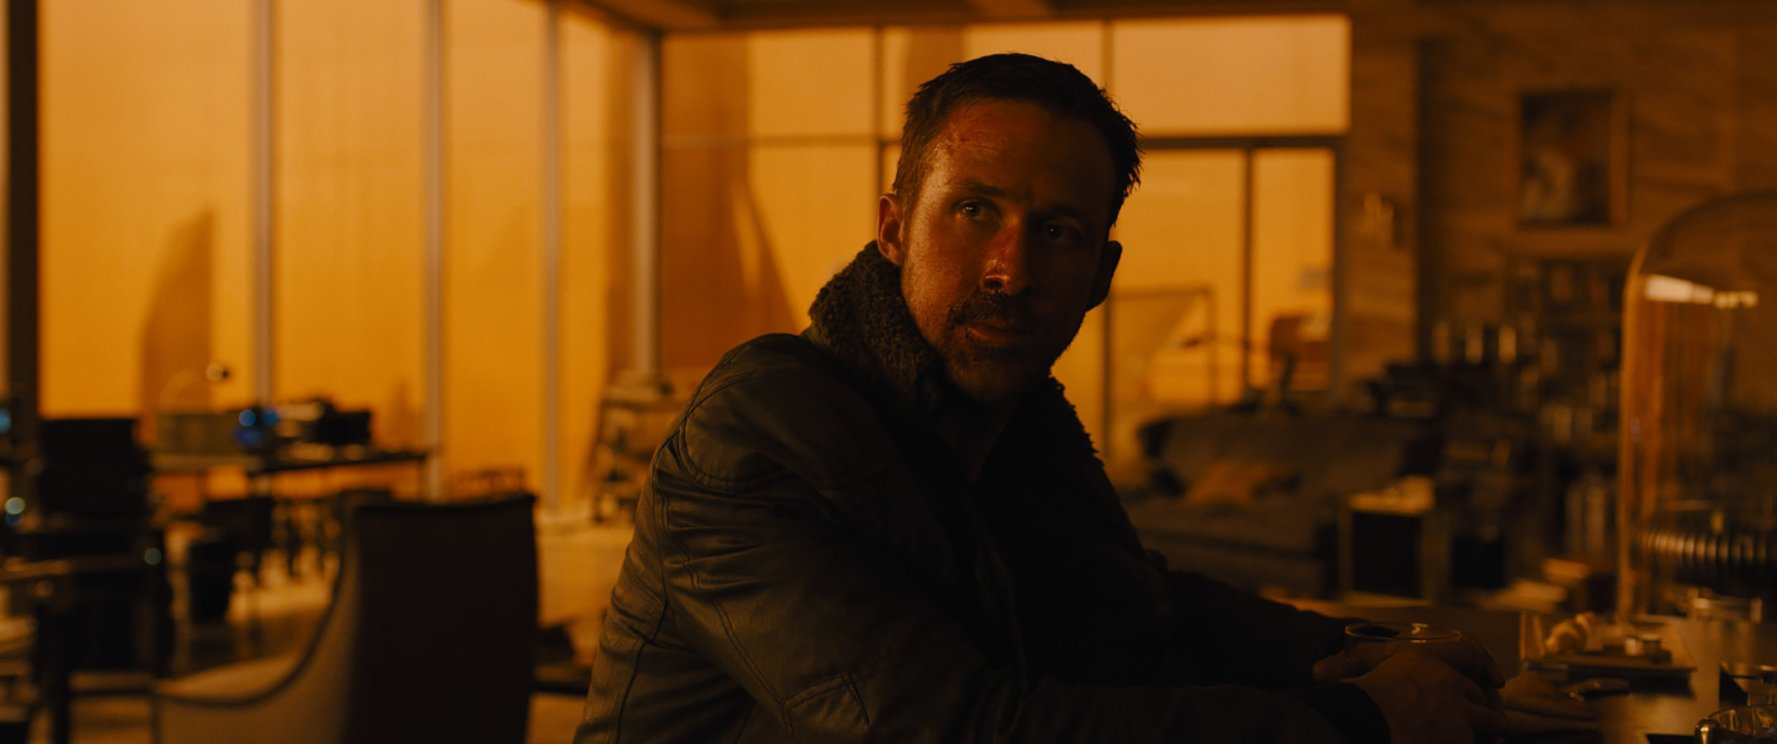 New To Home Video: Blade Runner 2049, Happy Death Day, The Snowman